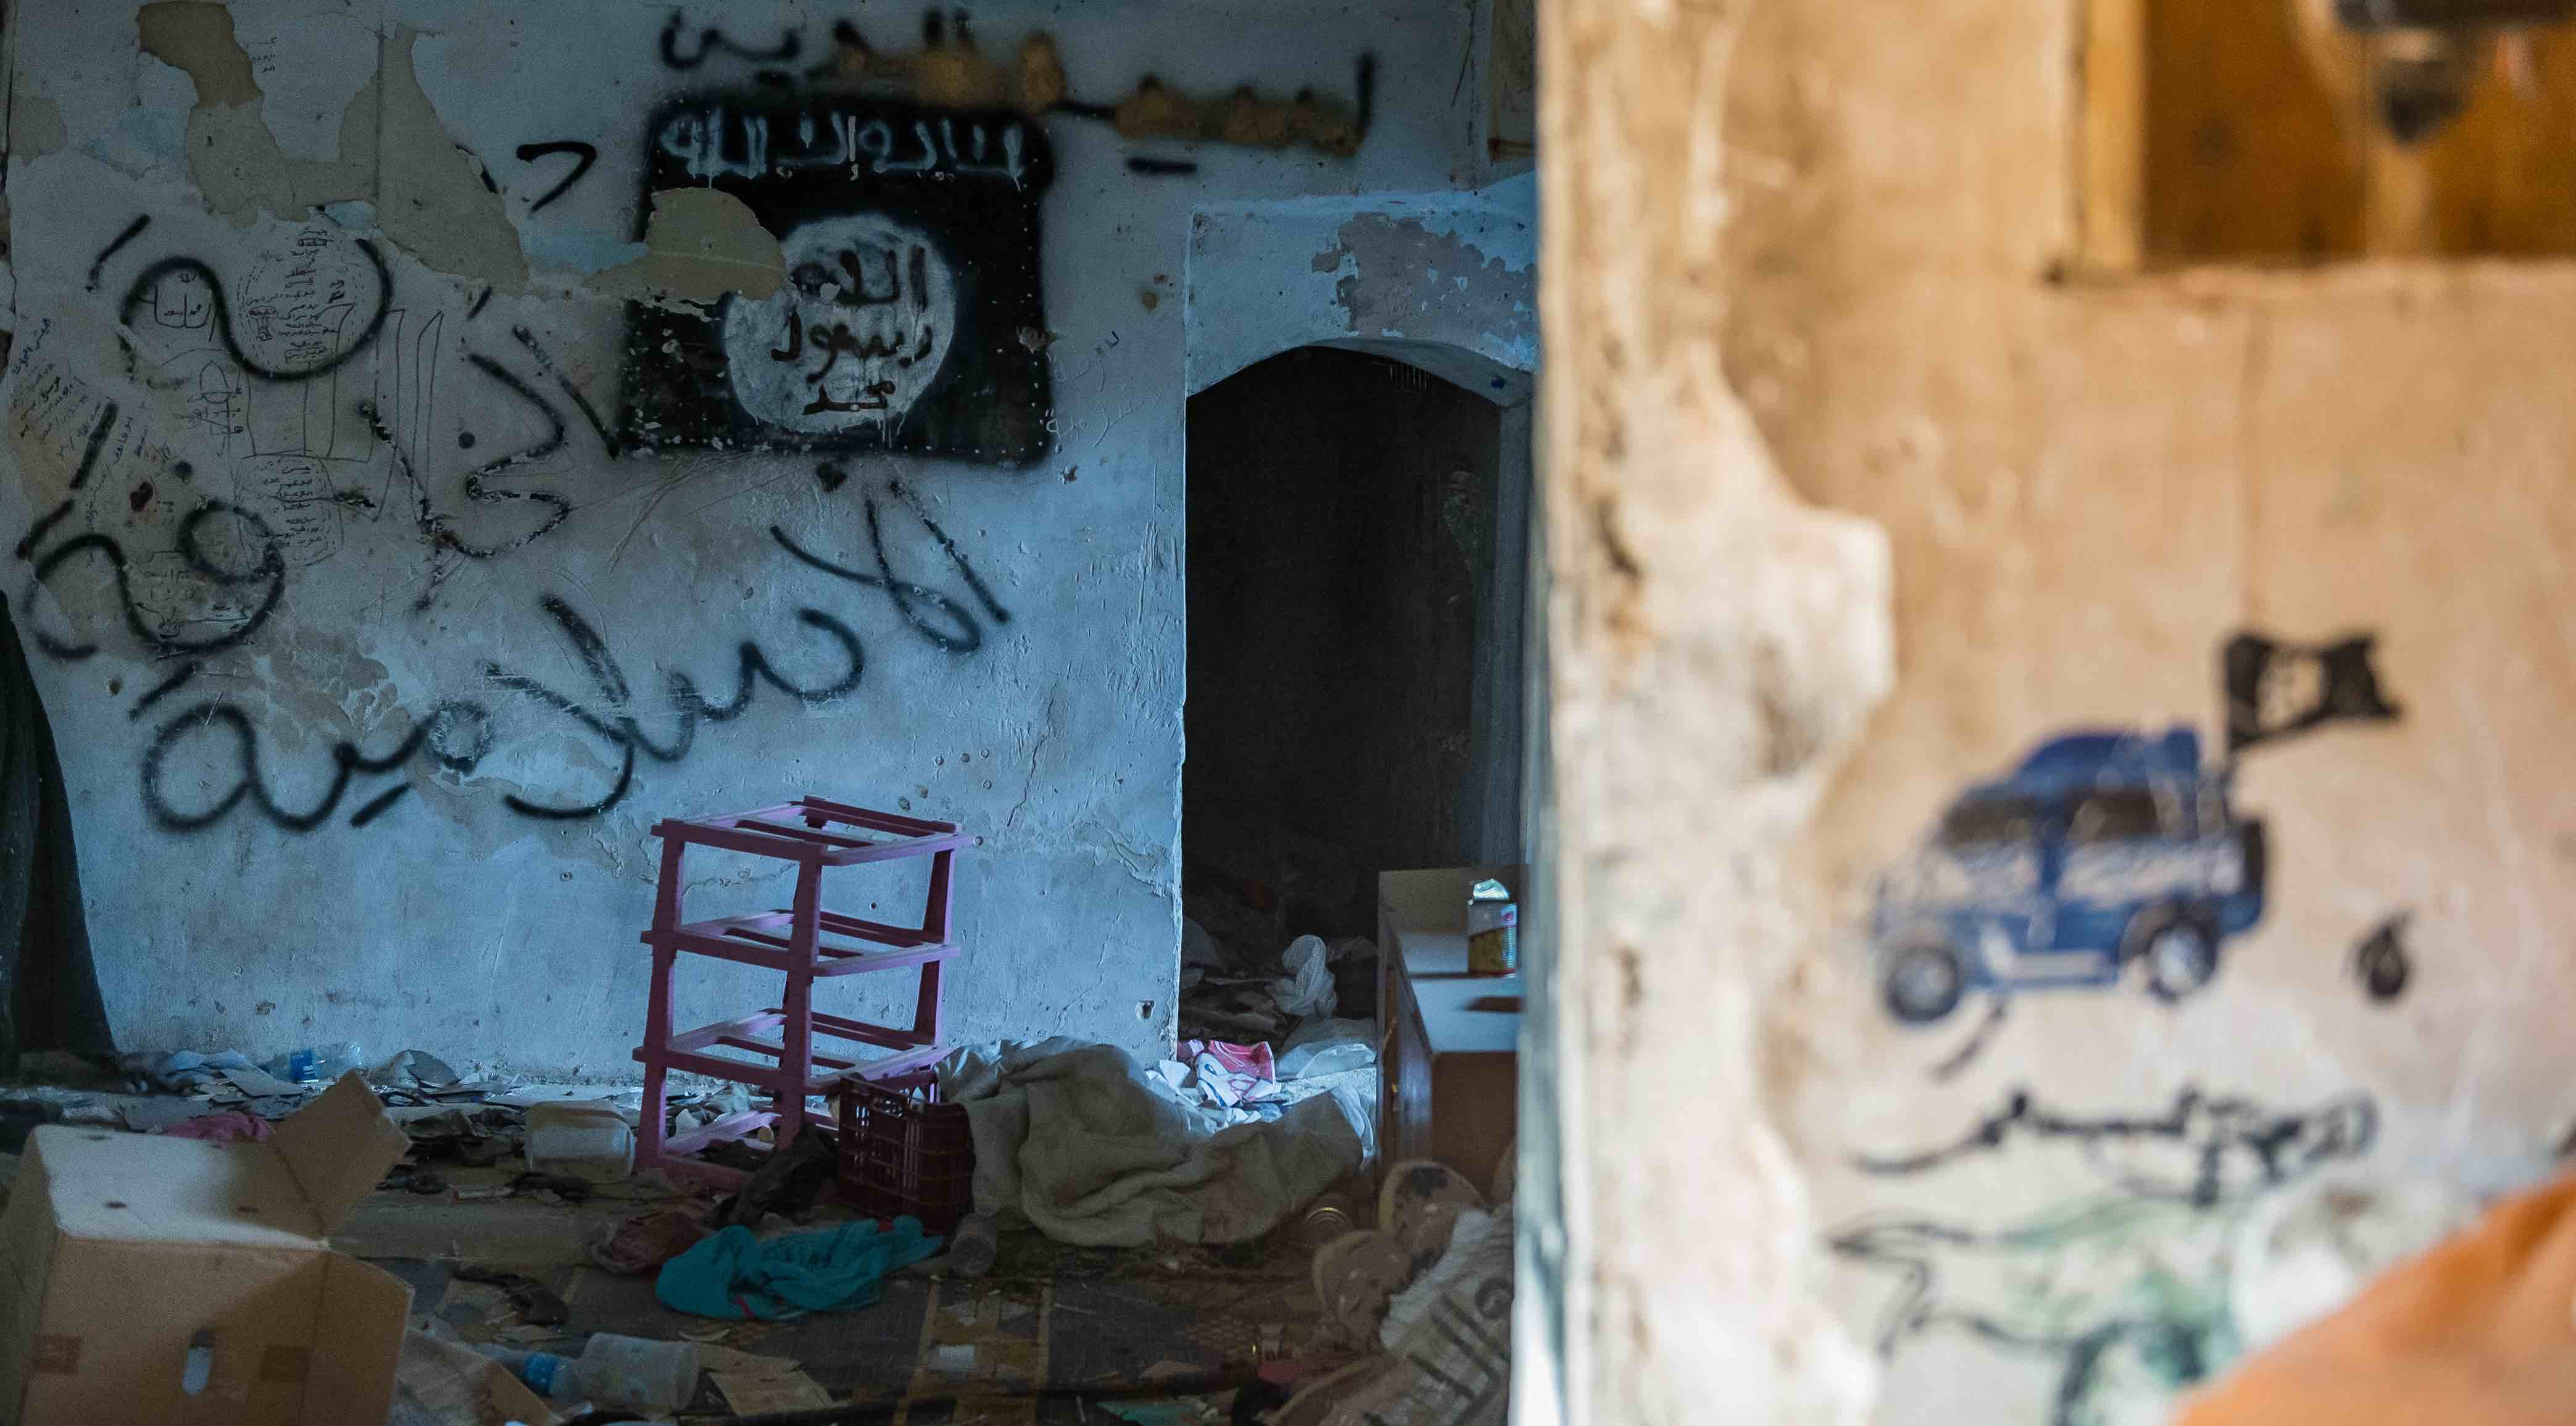 Singer city in Iraq in the aftermath of ISIS, 2016 (Photo: Alessandro Rota/Getty)